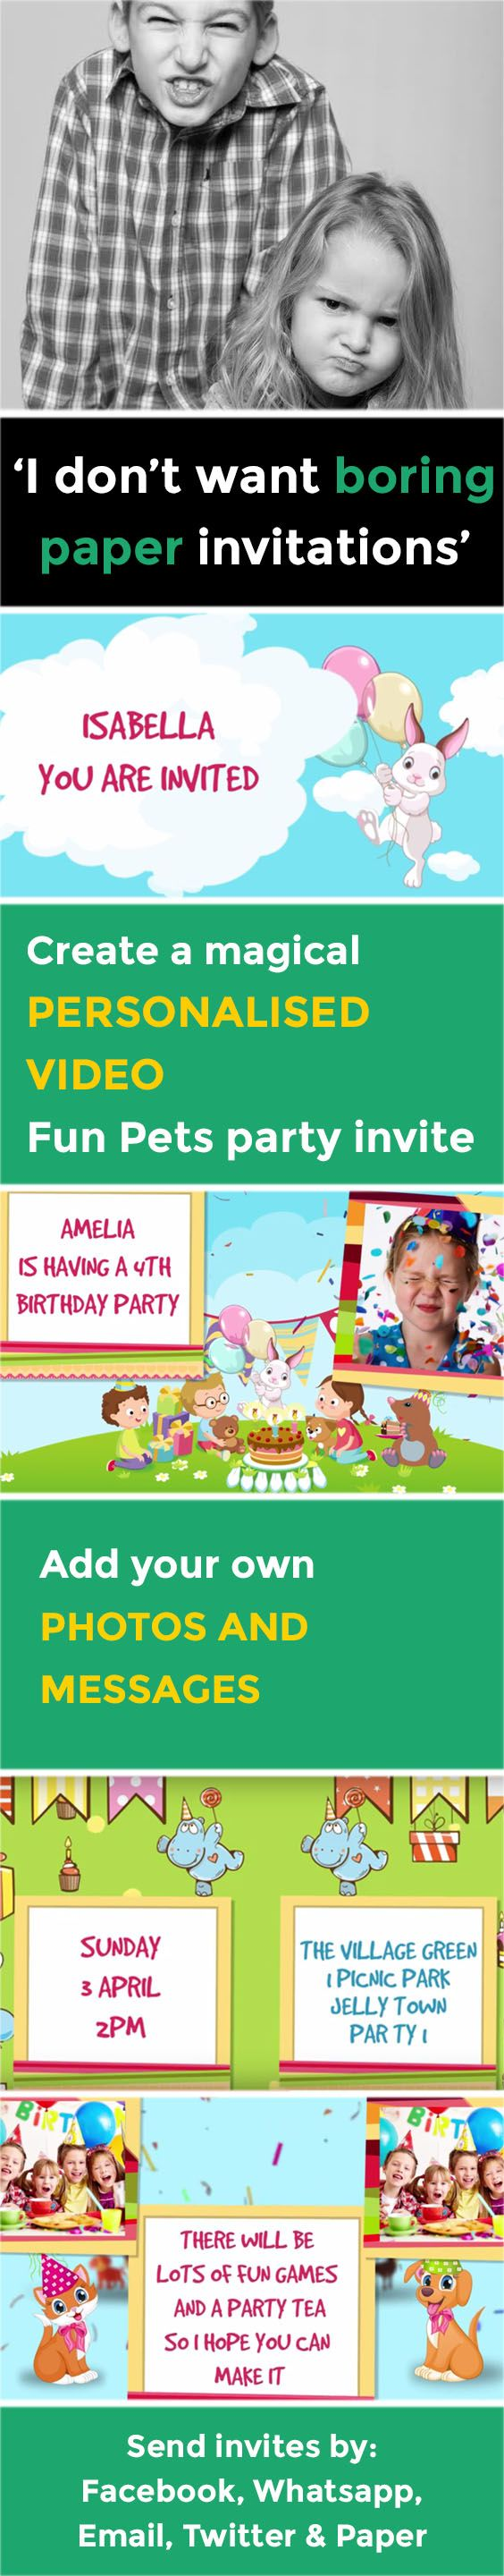 invitation words forst birthday party%0A Create a magical VIDEO party invitation  www poshtiger co